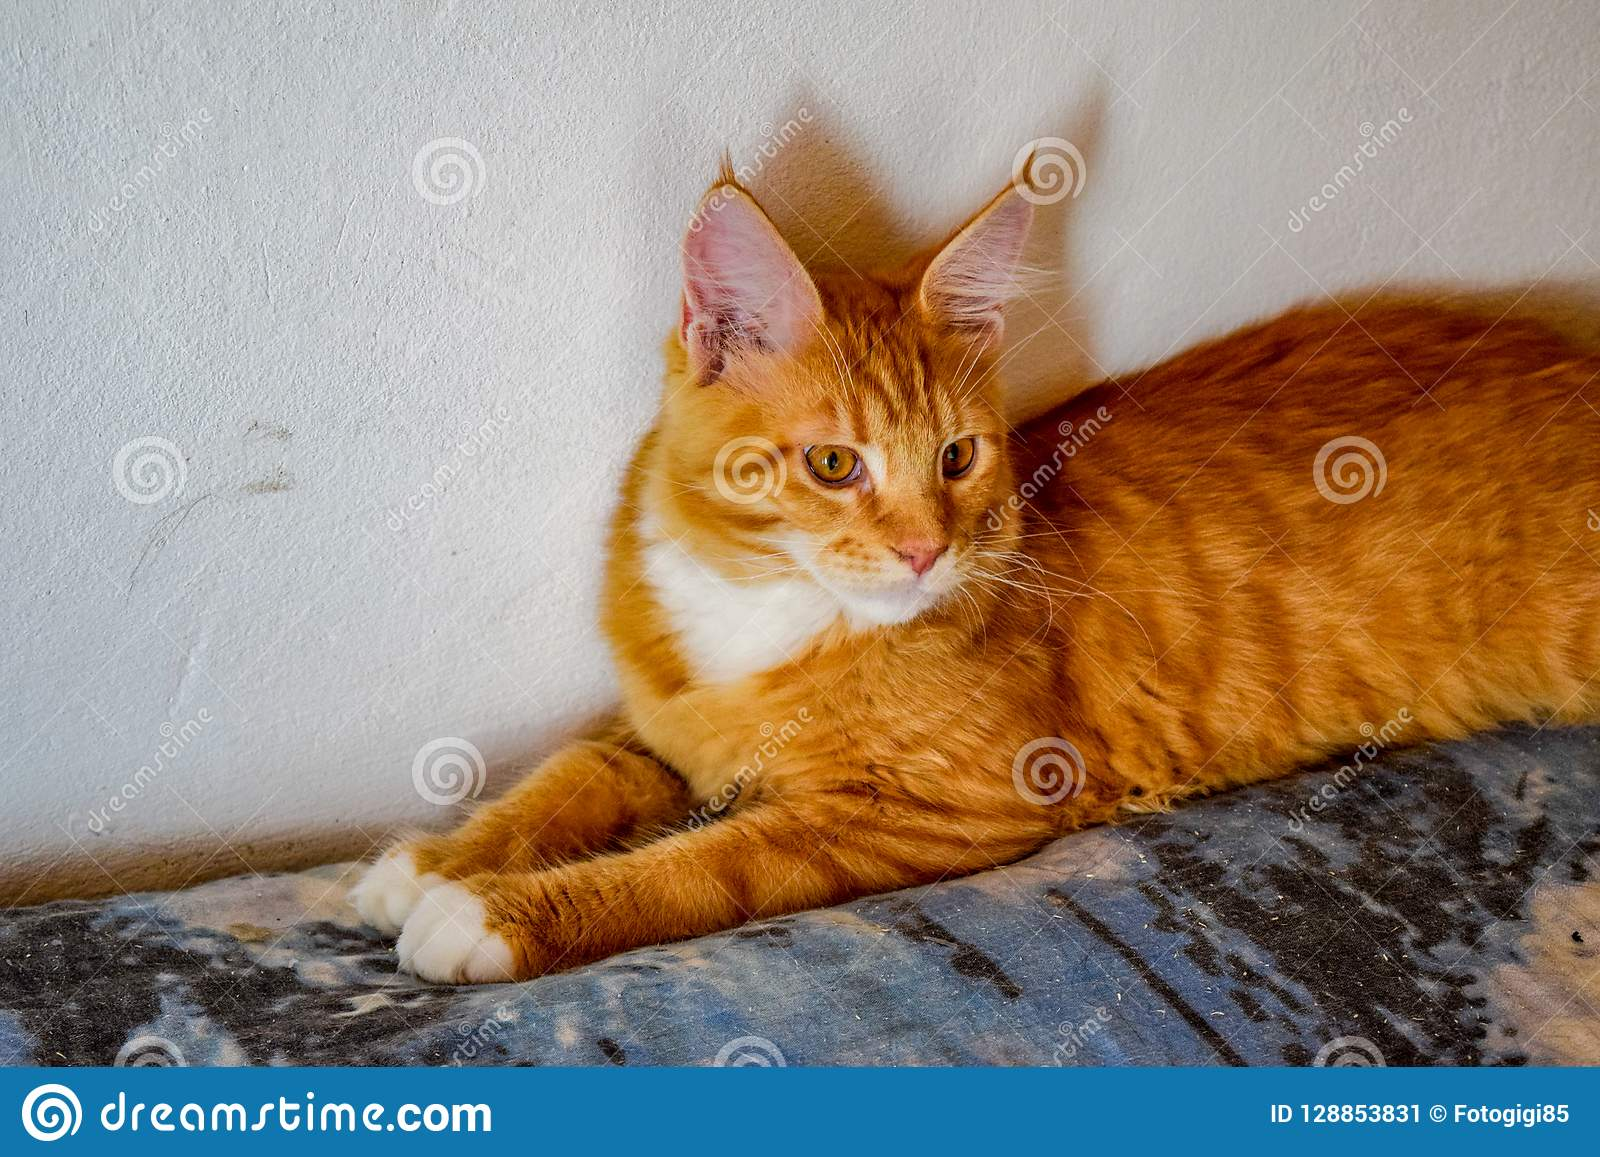 Maine Coon Cat Giant Maine Coon Cat. Breeding Of Purebred